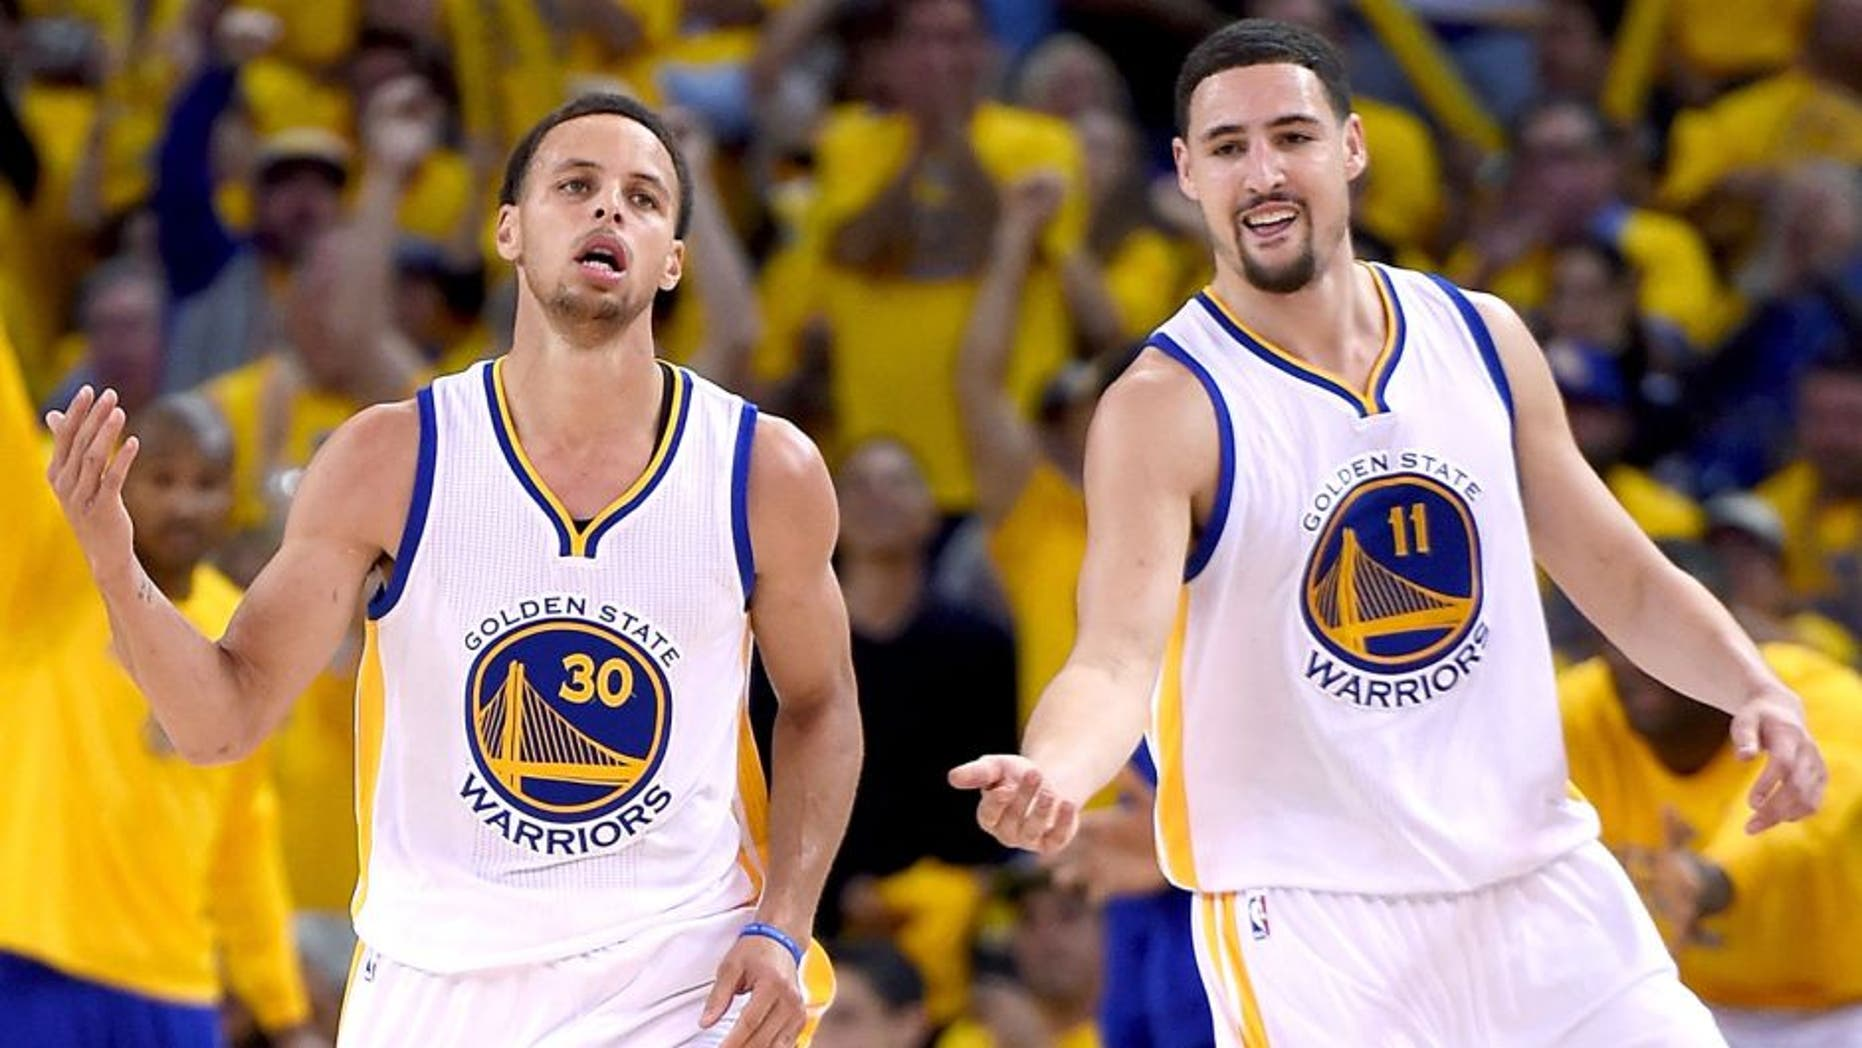 OAKLAND, CA - APRIL 20: Stephen Curry #30, and Klay Thompson #11 of the Golden State Warriors reacts after Curry hit a jump shot against the New Orleans Pelicans in the fourth quarter during the first round of the 2015 NBA Playoffs at ORACLE Arena on April 20, 2015 in Oakland, California. NOTE TO USER: User expressly acknowledges and agrees that, by downloading and or using this photograph, User is consenting to the terms and conditions of the Getty Images License Agreement. (Photo by Thearon W. Henderson/Getty Images)